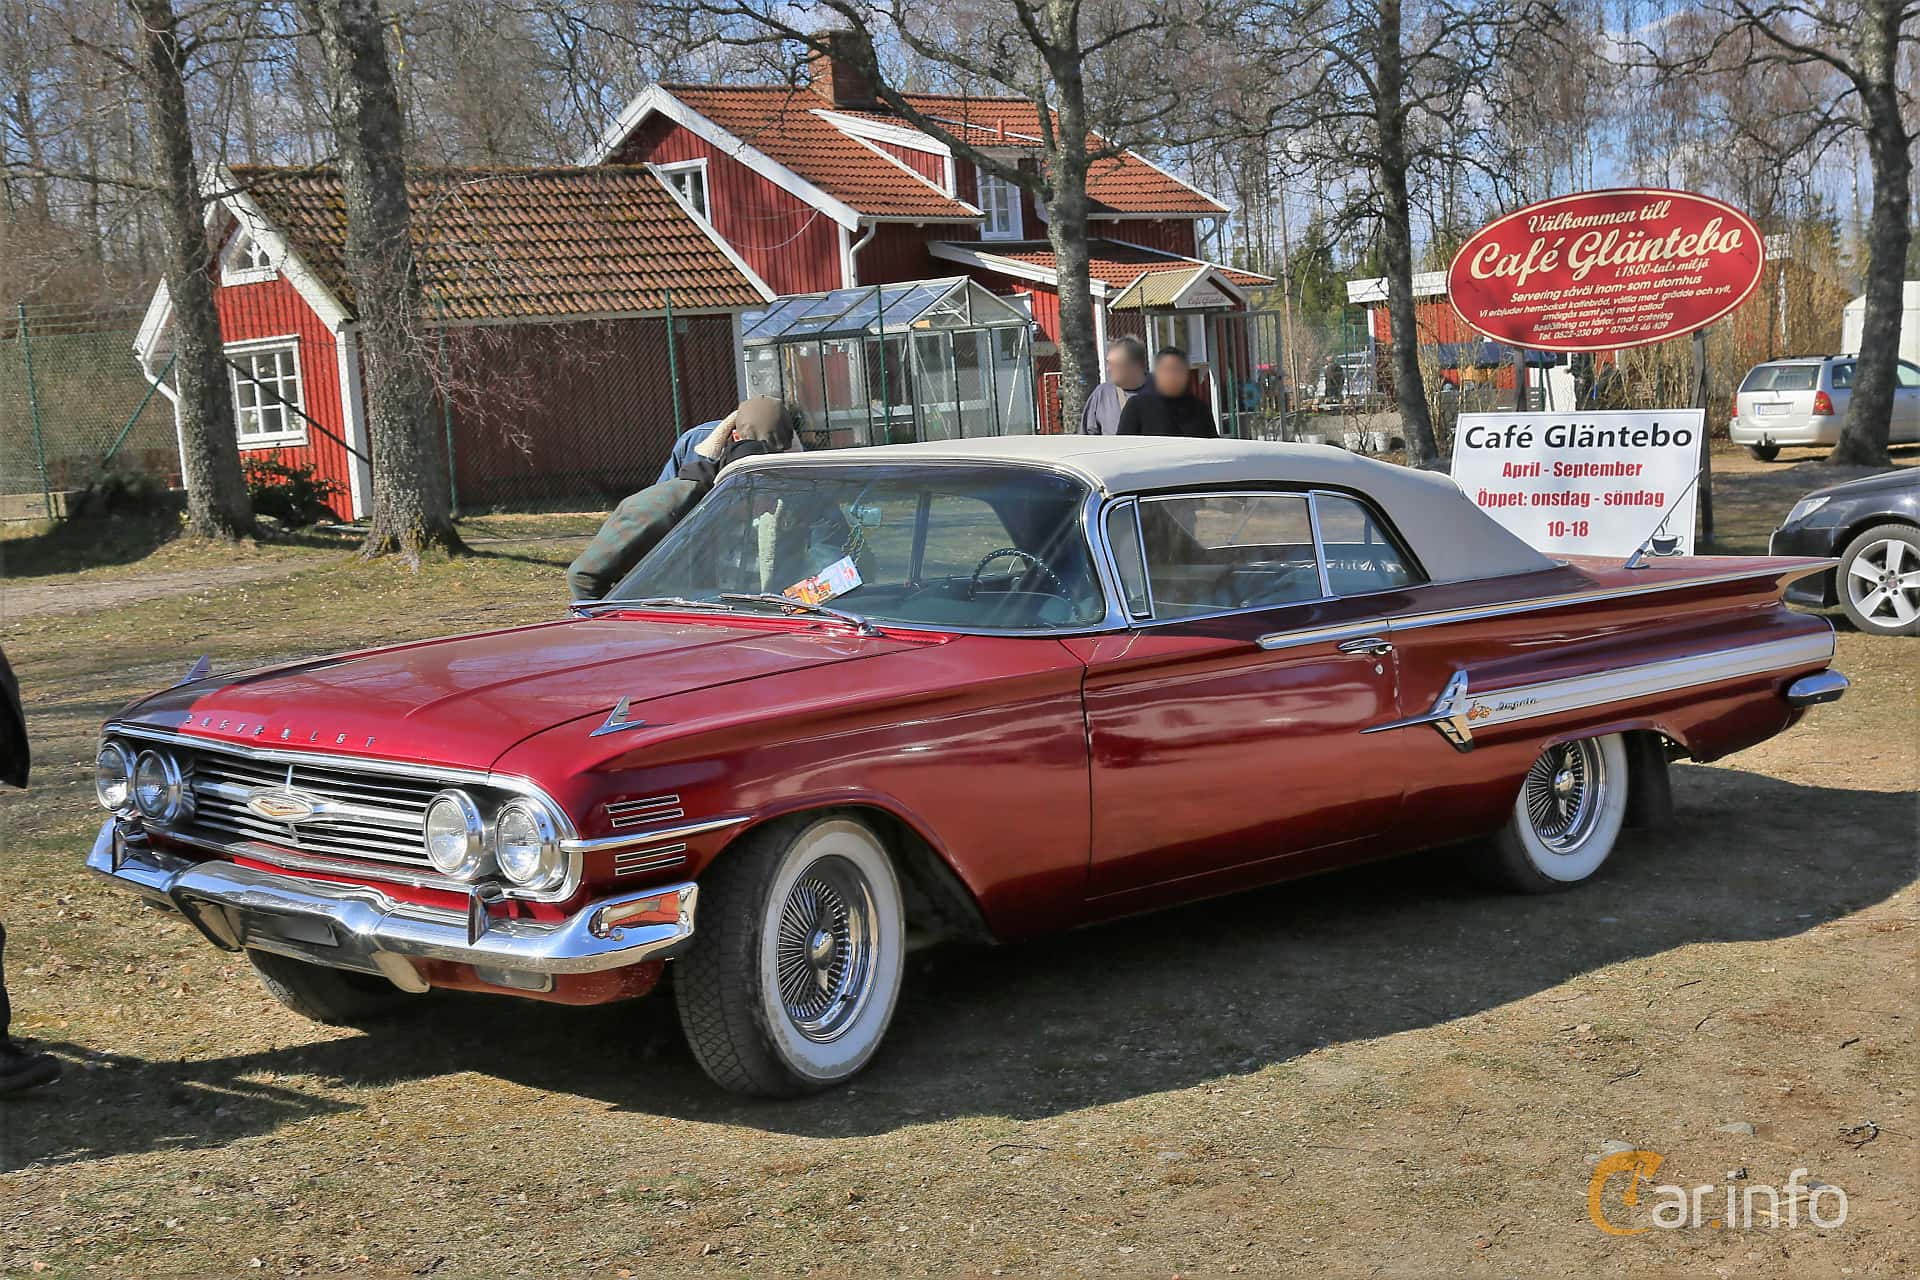 Chevrolet Impala Convertible 4.6 V8 Powerglide, 173hp, 1960 at Uddevalla Veteranbilsmarknad Backamo, Ljungsk 2019